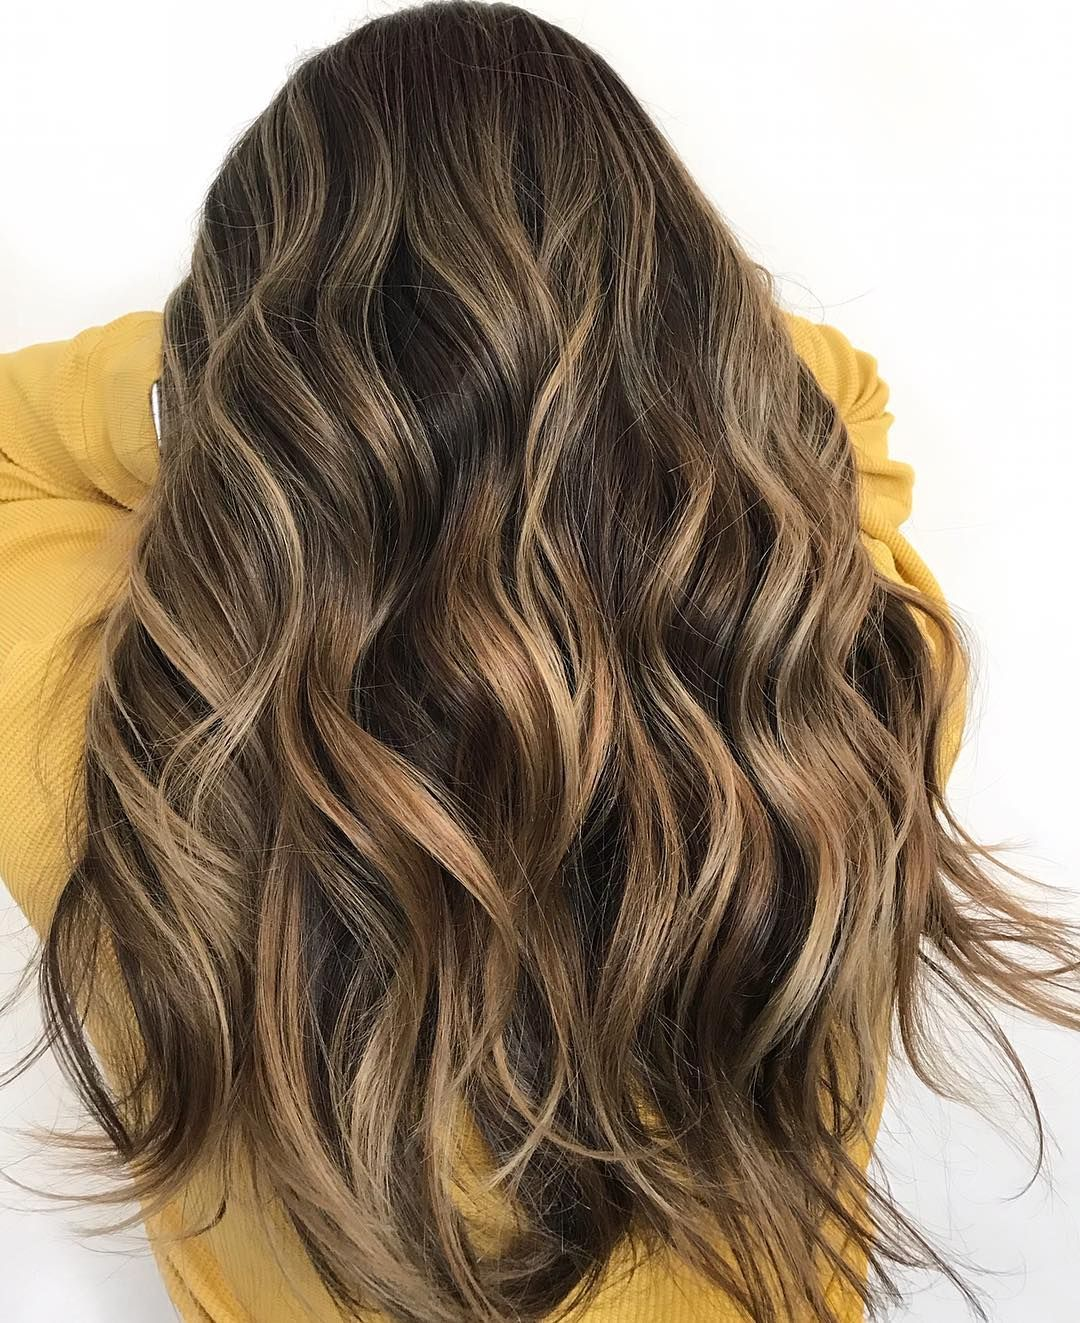 "44 Balayage Hair Color Ideas With Blonde – Fabmood | Wedding Colors, Wedding Themes, Wedding color palettes<p><a href=""http://www.homeinteriordesign.org/2018/02/short-guide-to-interior-decoration.html"">Short guide to interior decoration</a></p>"